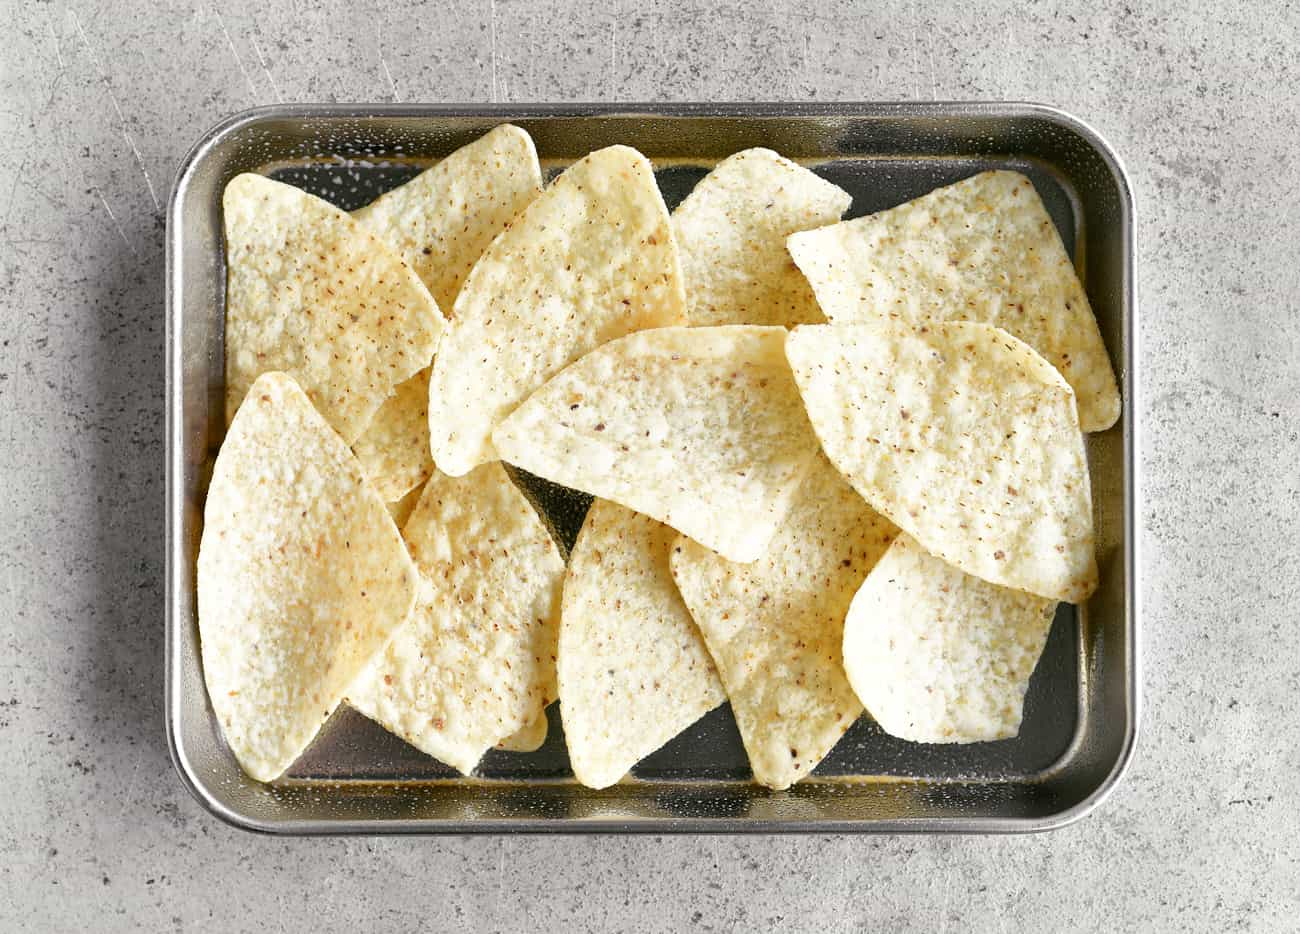 tortilla chips on a silver tray